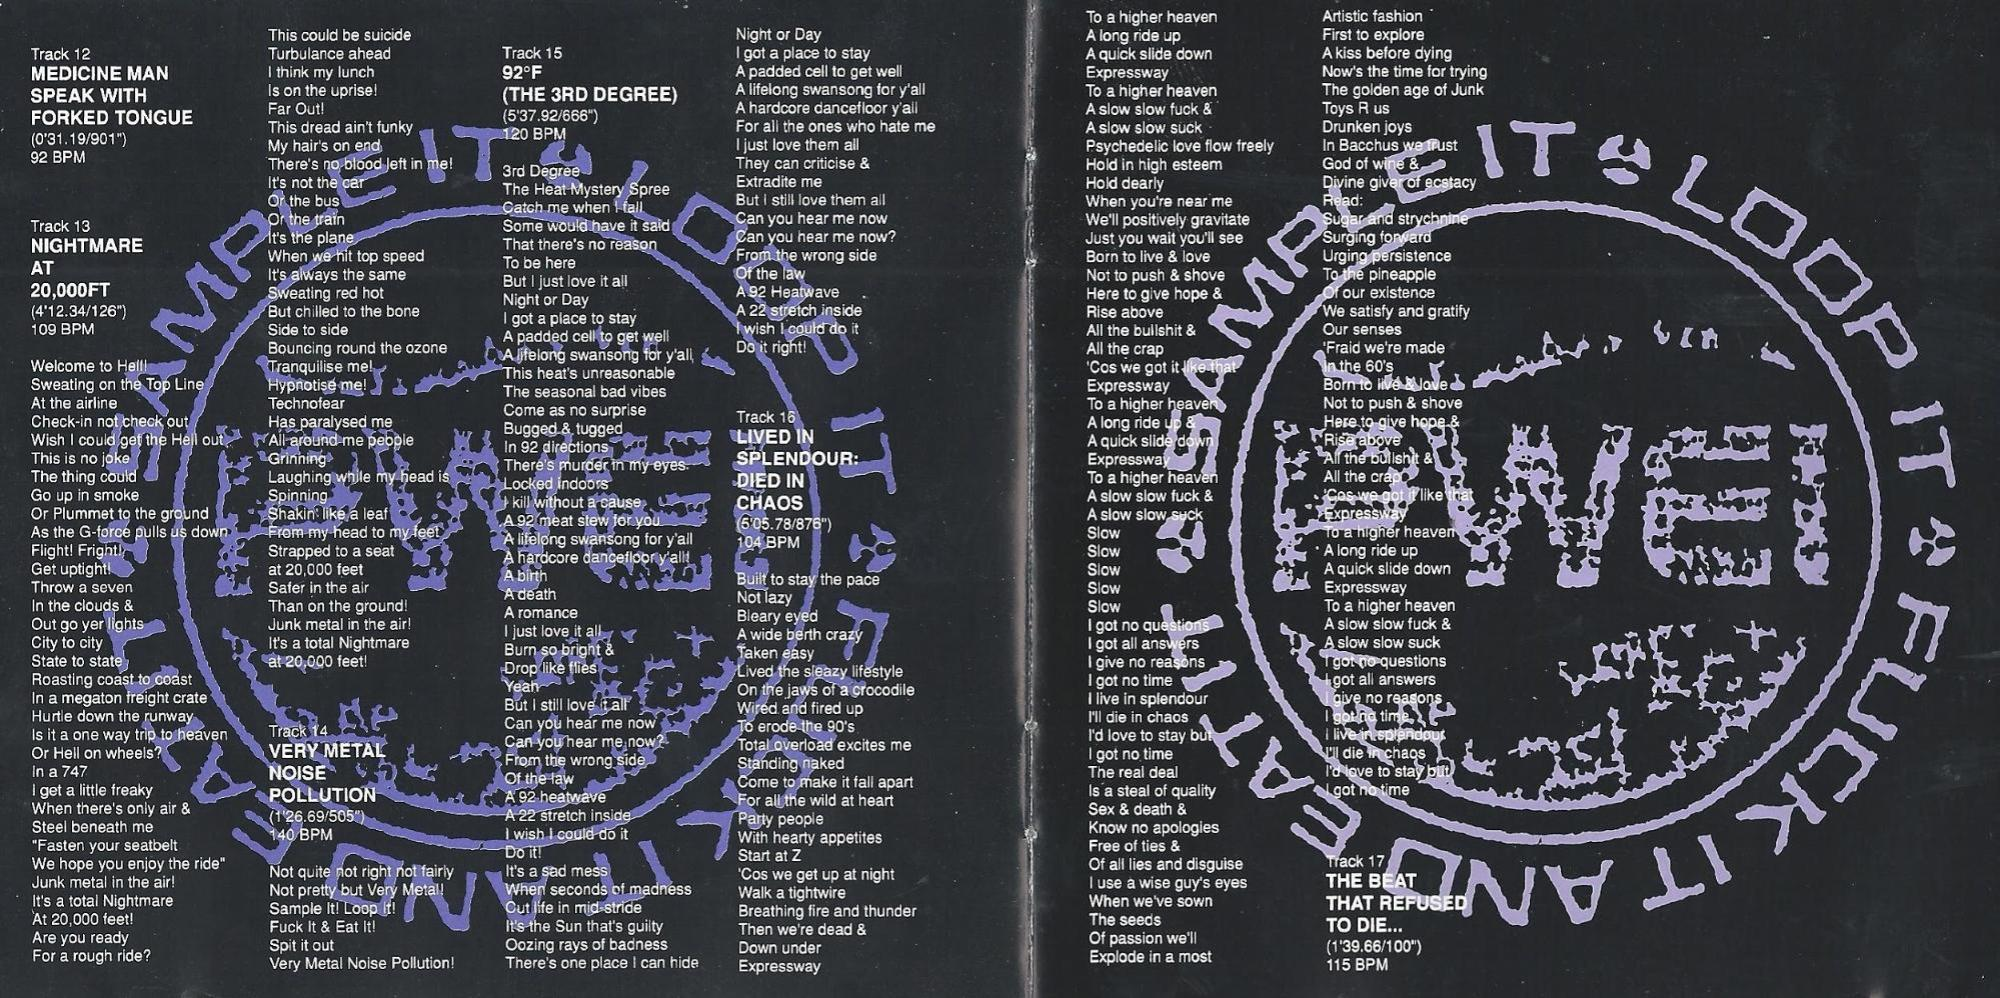 pwei liner notes